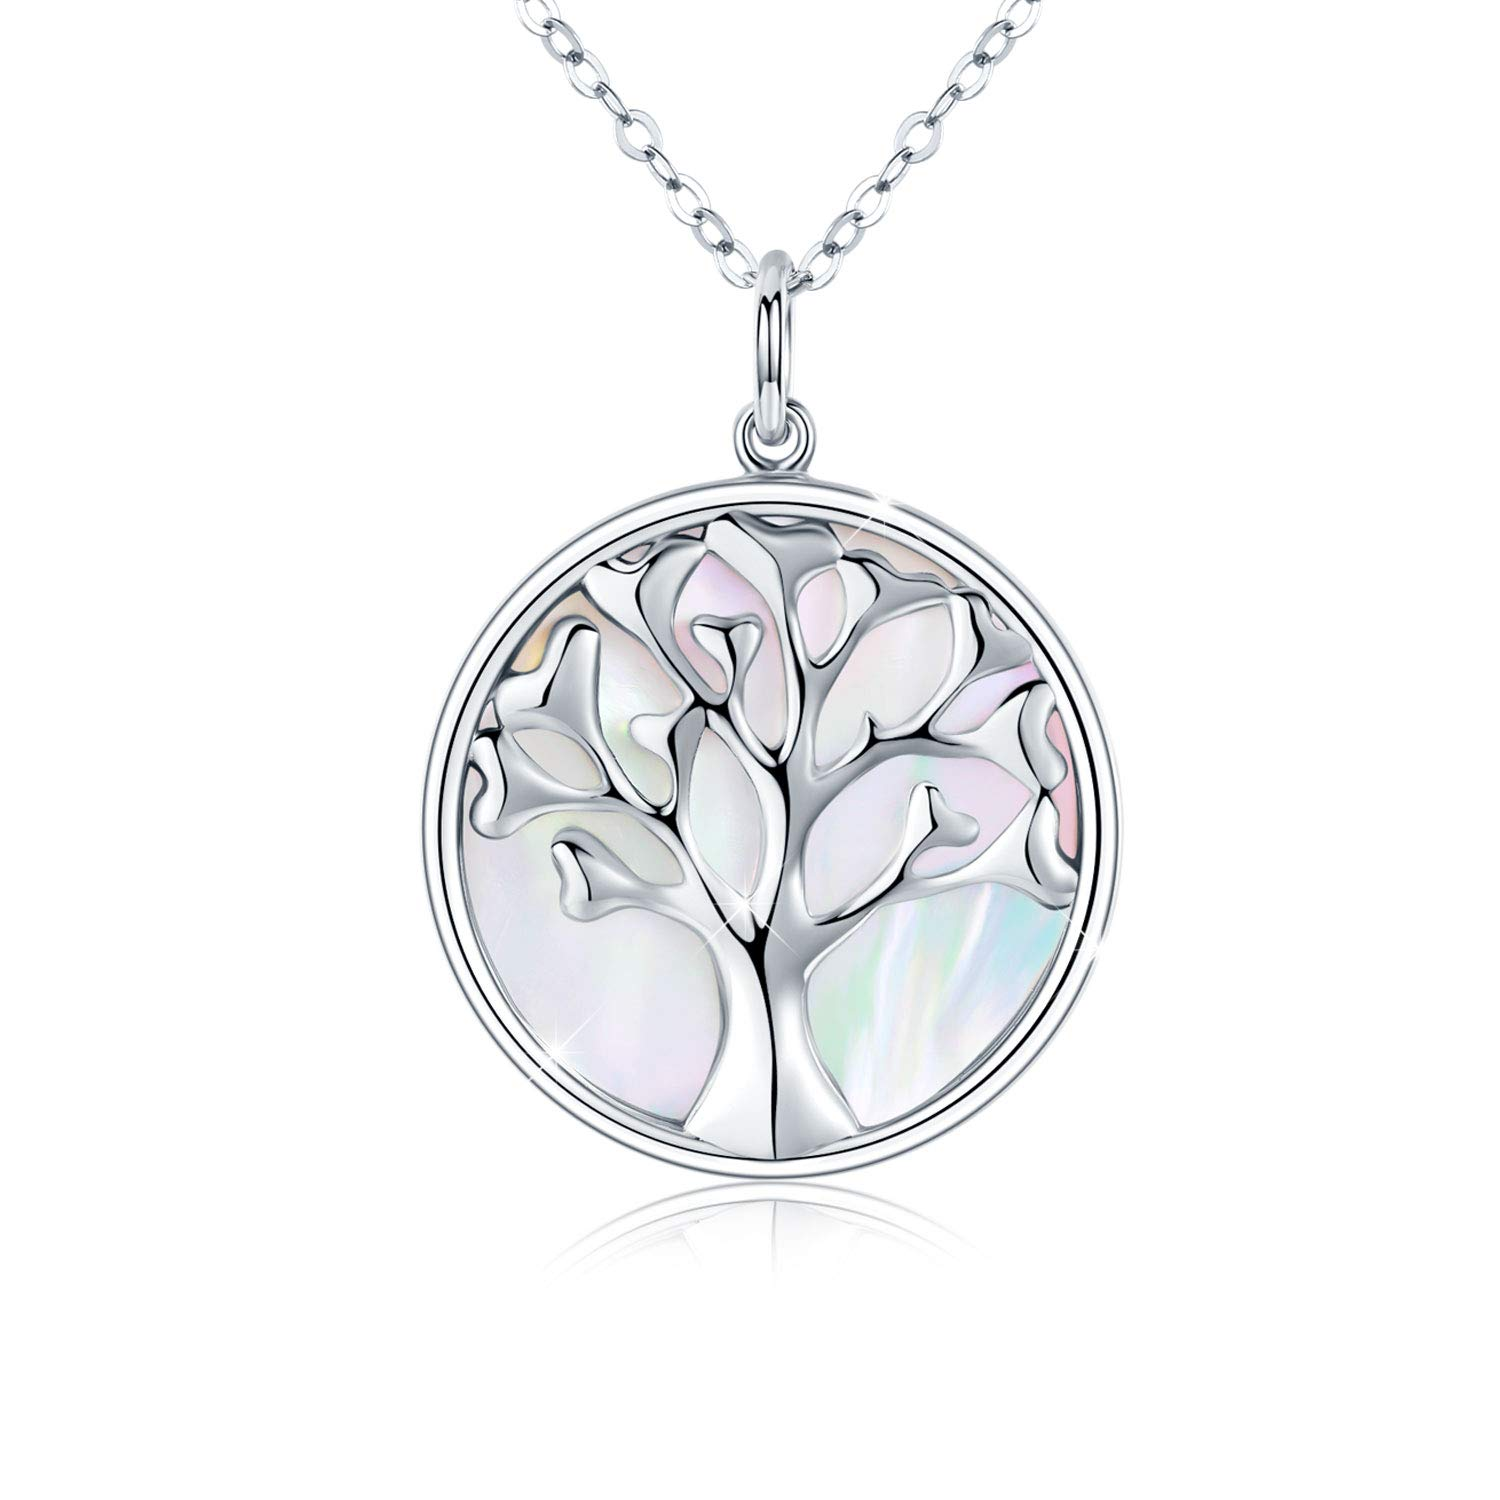 Mother of Pearl Necklace Women 925 Sterling Silver Tree of Life Pendant Necklace Girls Jewellery Gifts for Teens Sister,Wife,Mum